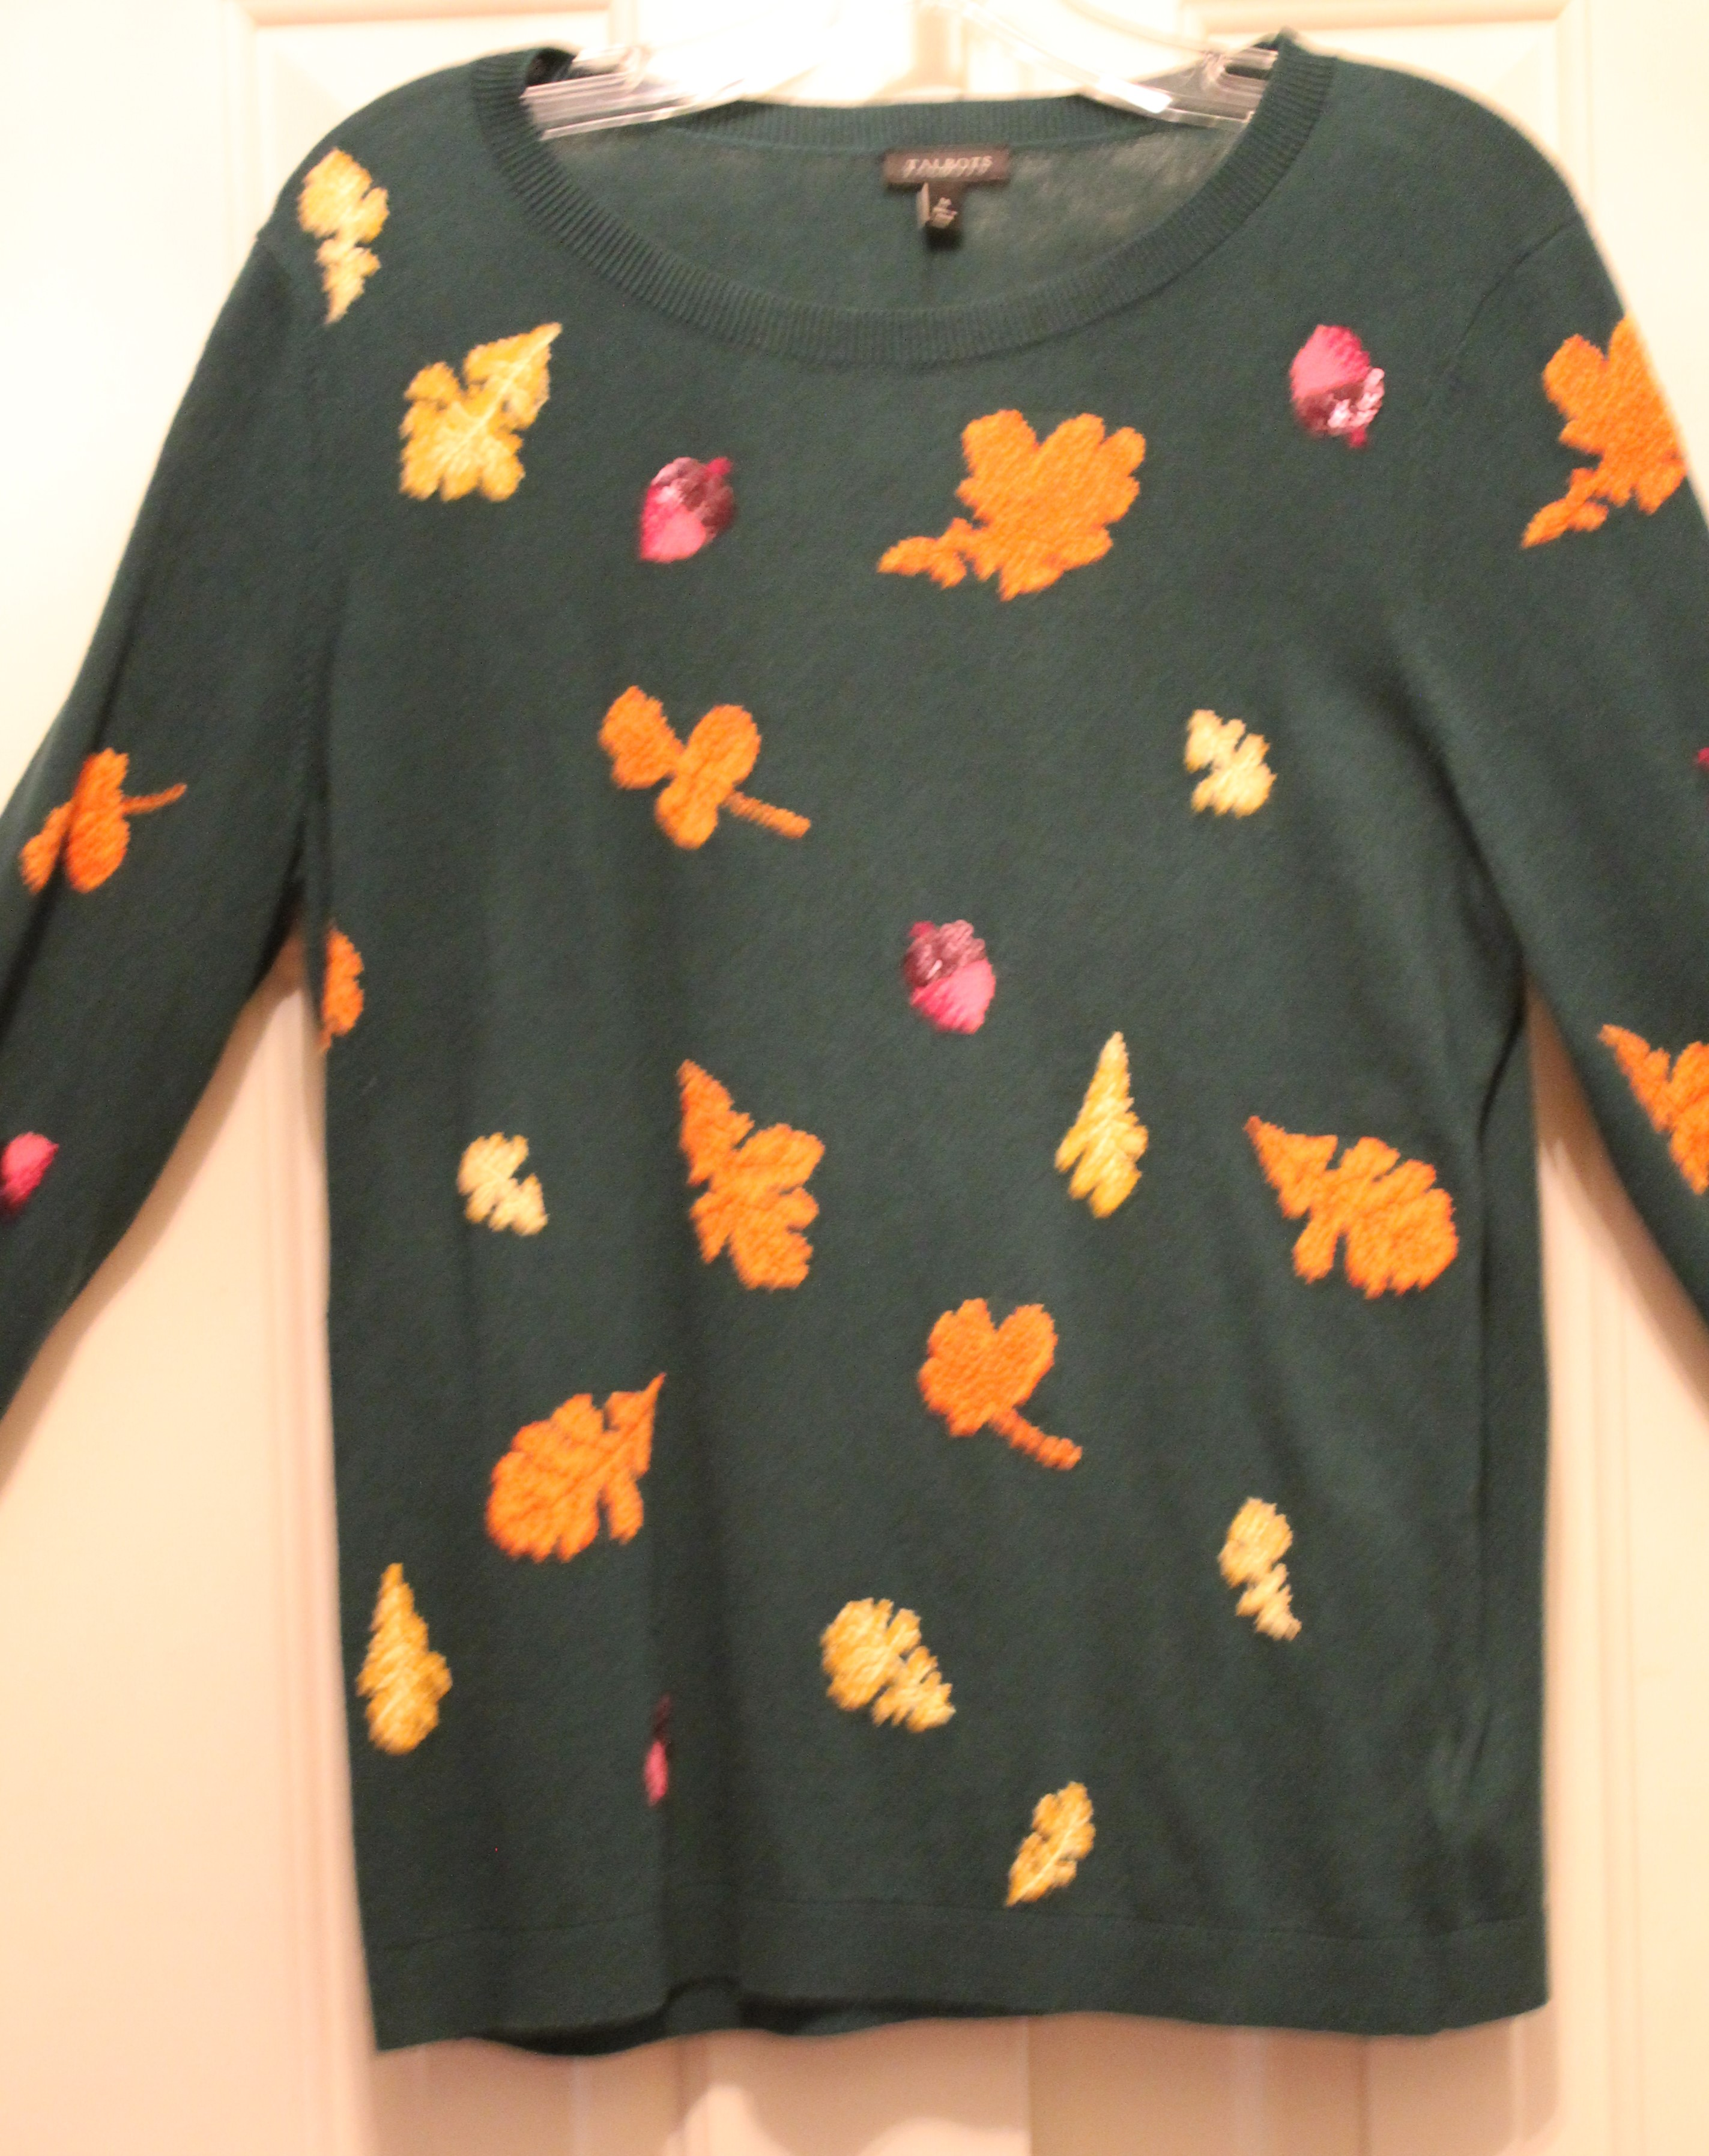 Talbots-Size-M-Green-Cotton-Blend-AUTUMN-Long-Sleeve-Top_64049C.jpg